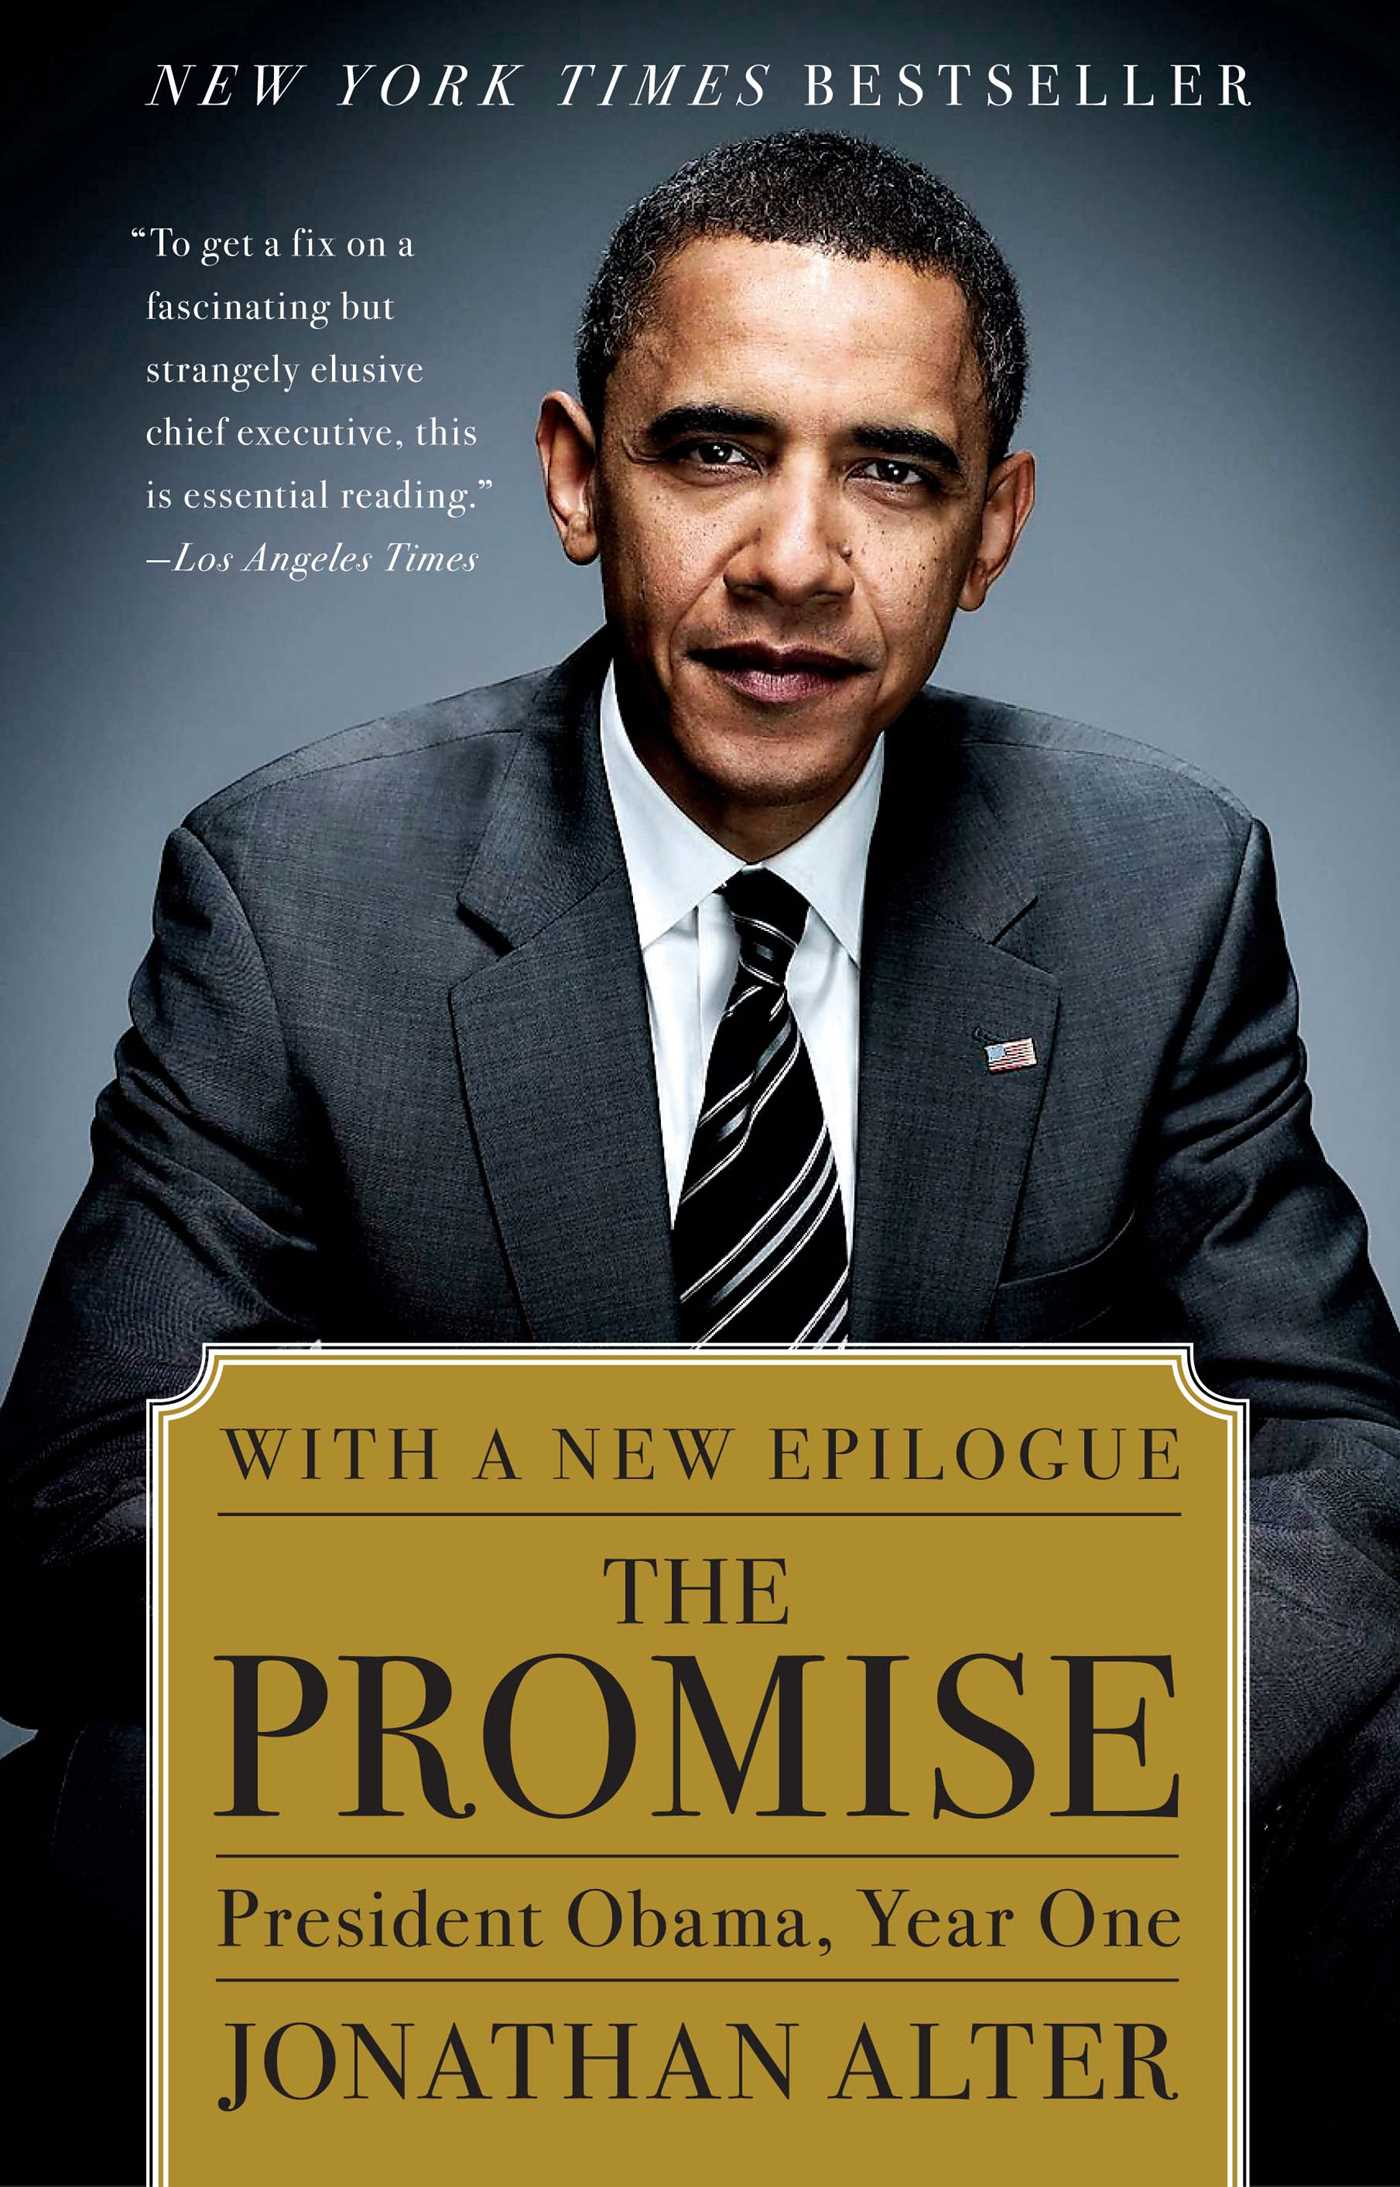 The Promise: President Obama, Year One by Jonathan Alter